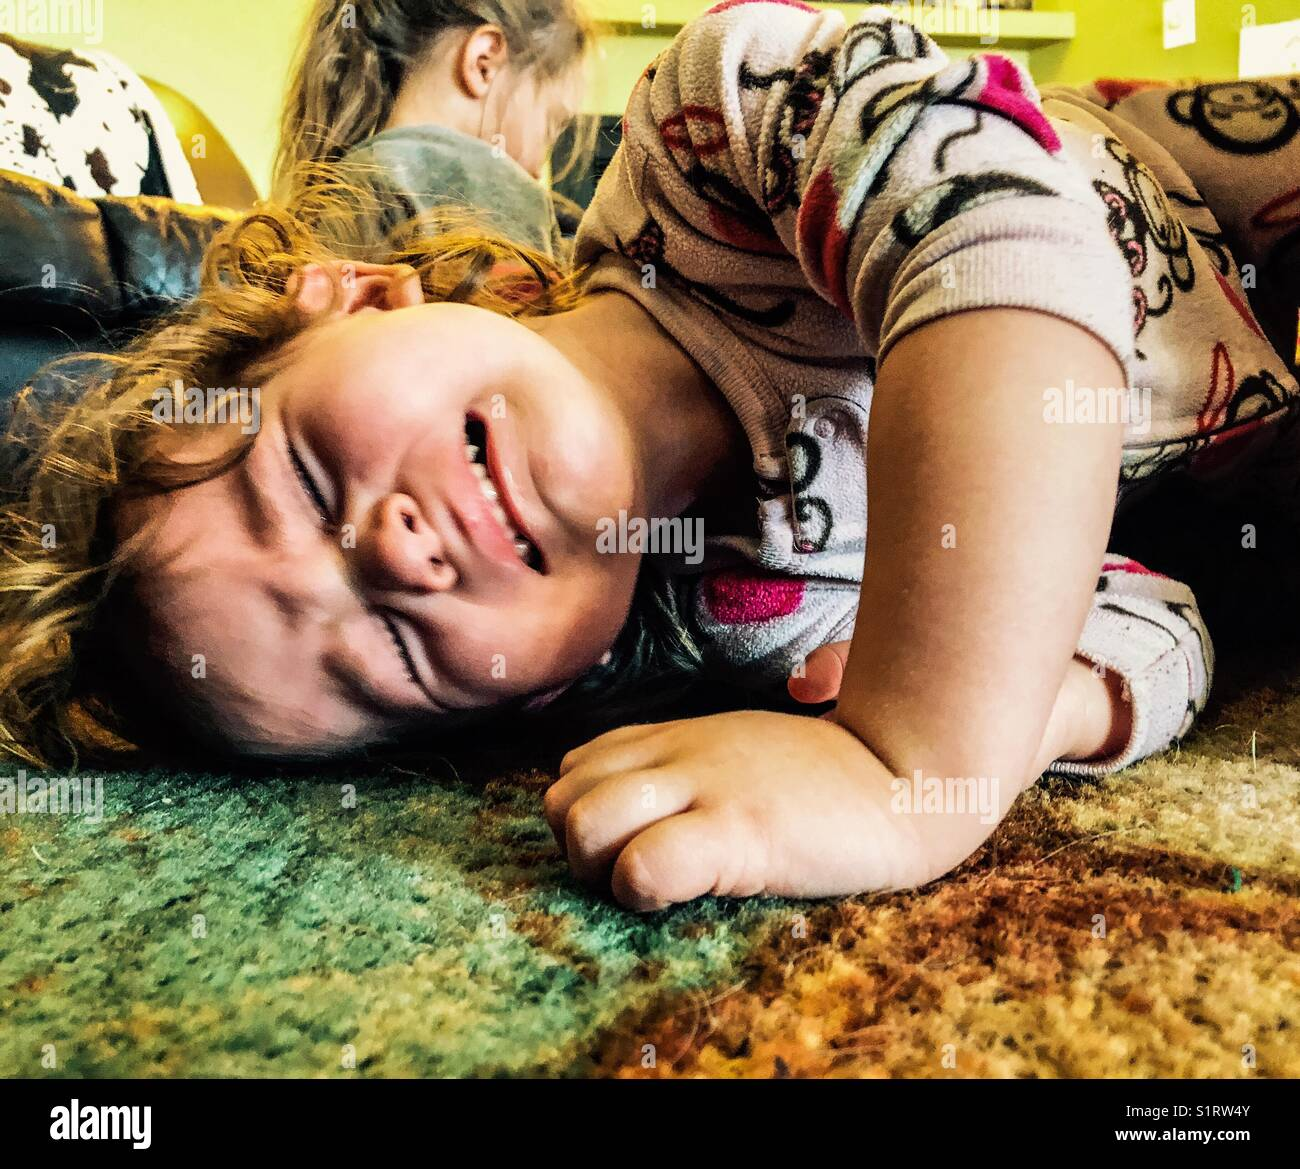 Toddler girl crying hard on carpeted floor - Stock Image